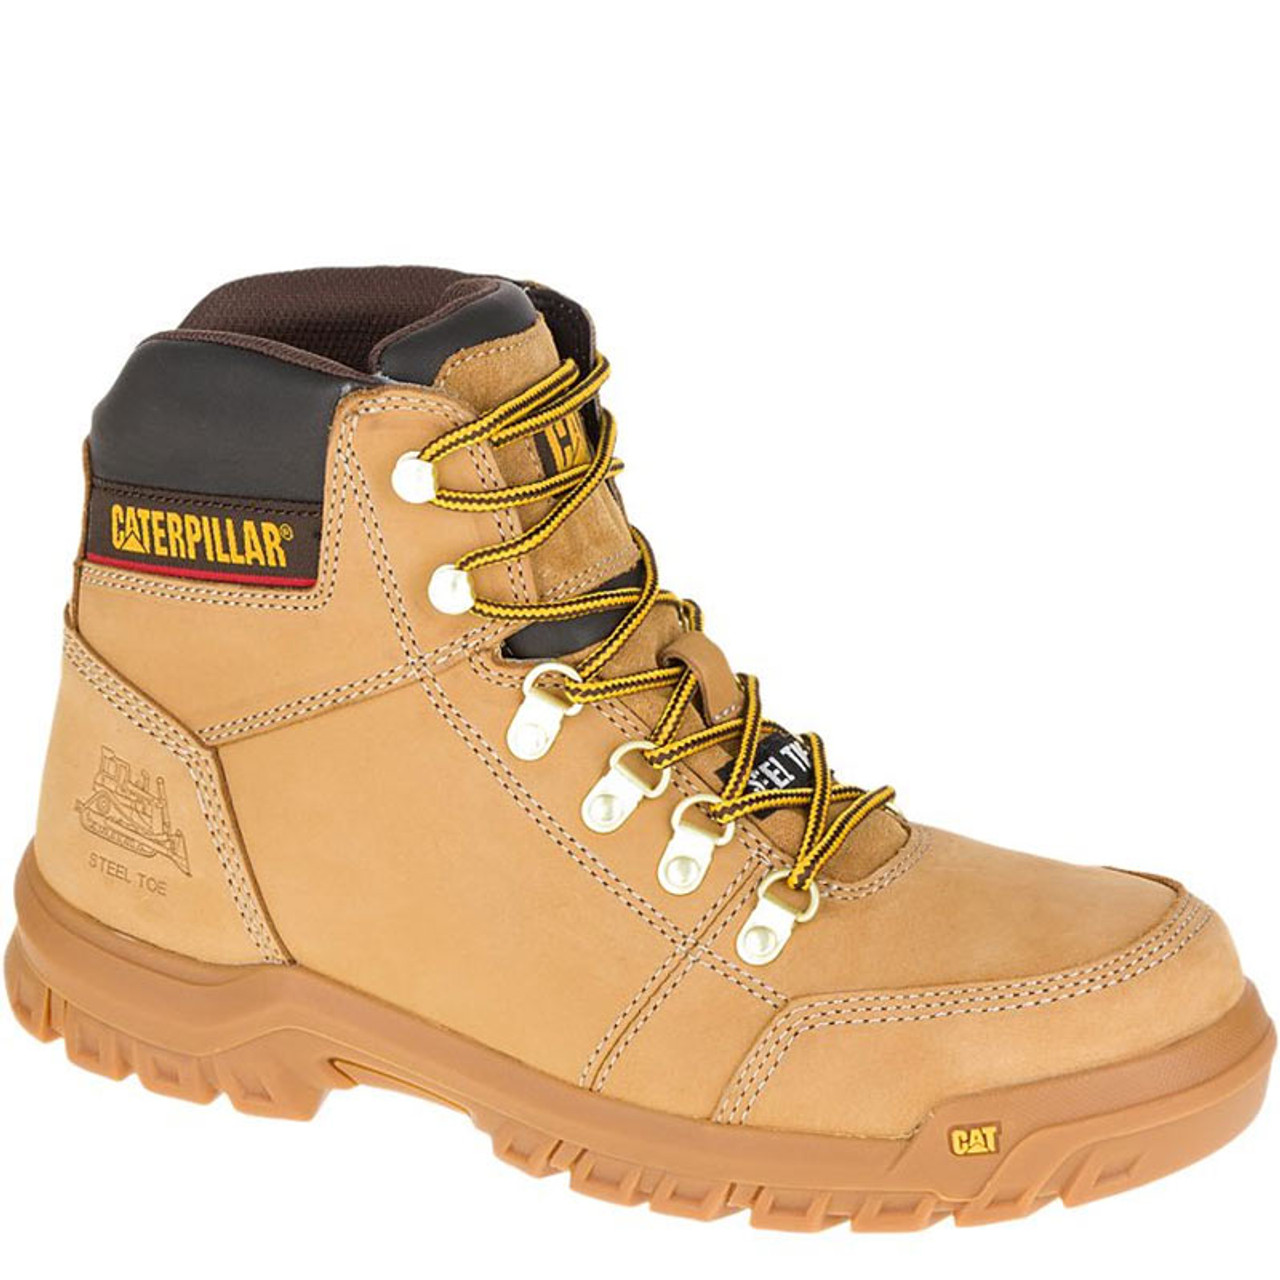 Cat P90801 Outline Steel Toe Non Insulated Gold Work Boots